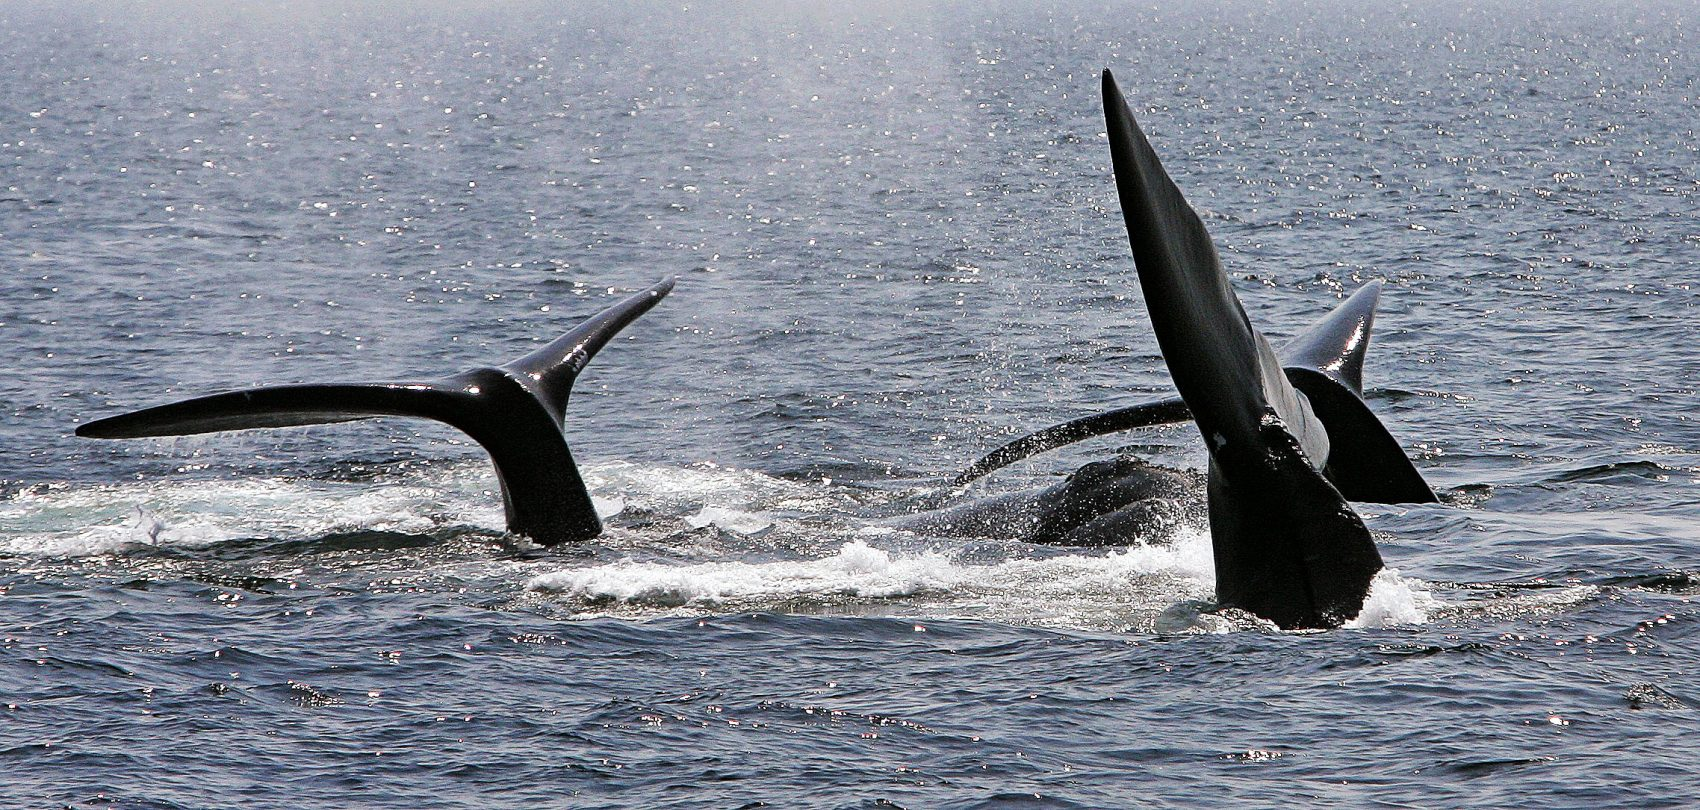 A ballet of three North Atlantic right whale tails break the surface off Provincetown, Mass., in Cape Cod Bay in 2008. (Stephan Savoia/AP)